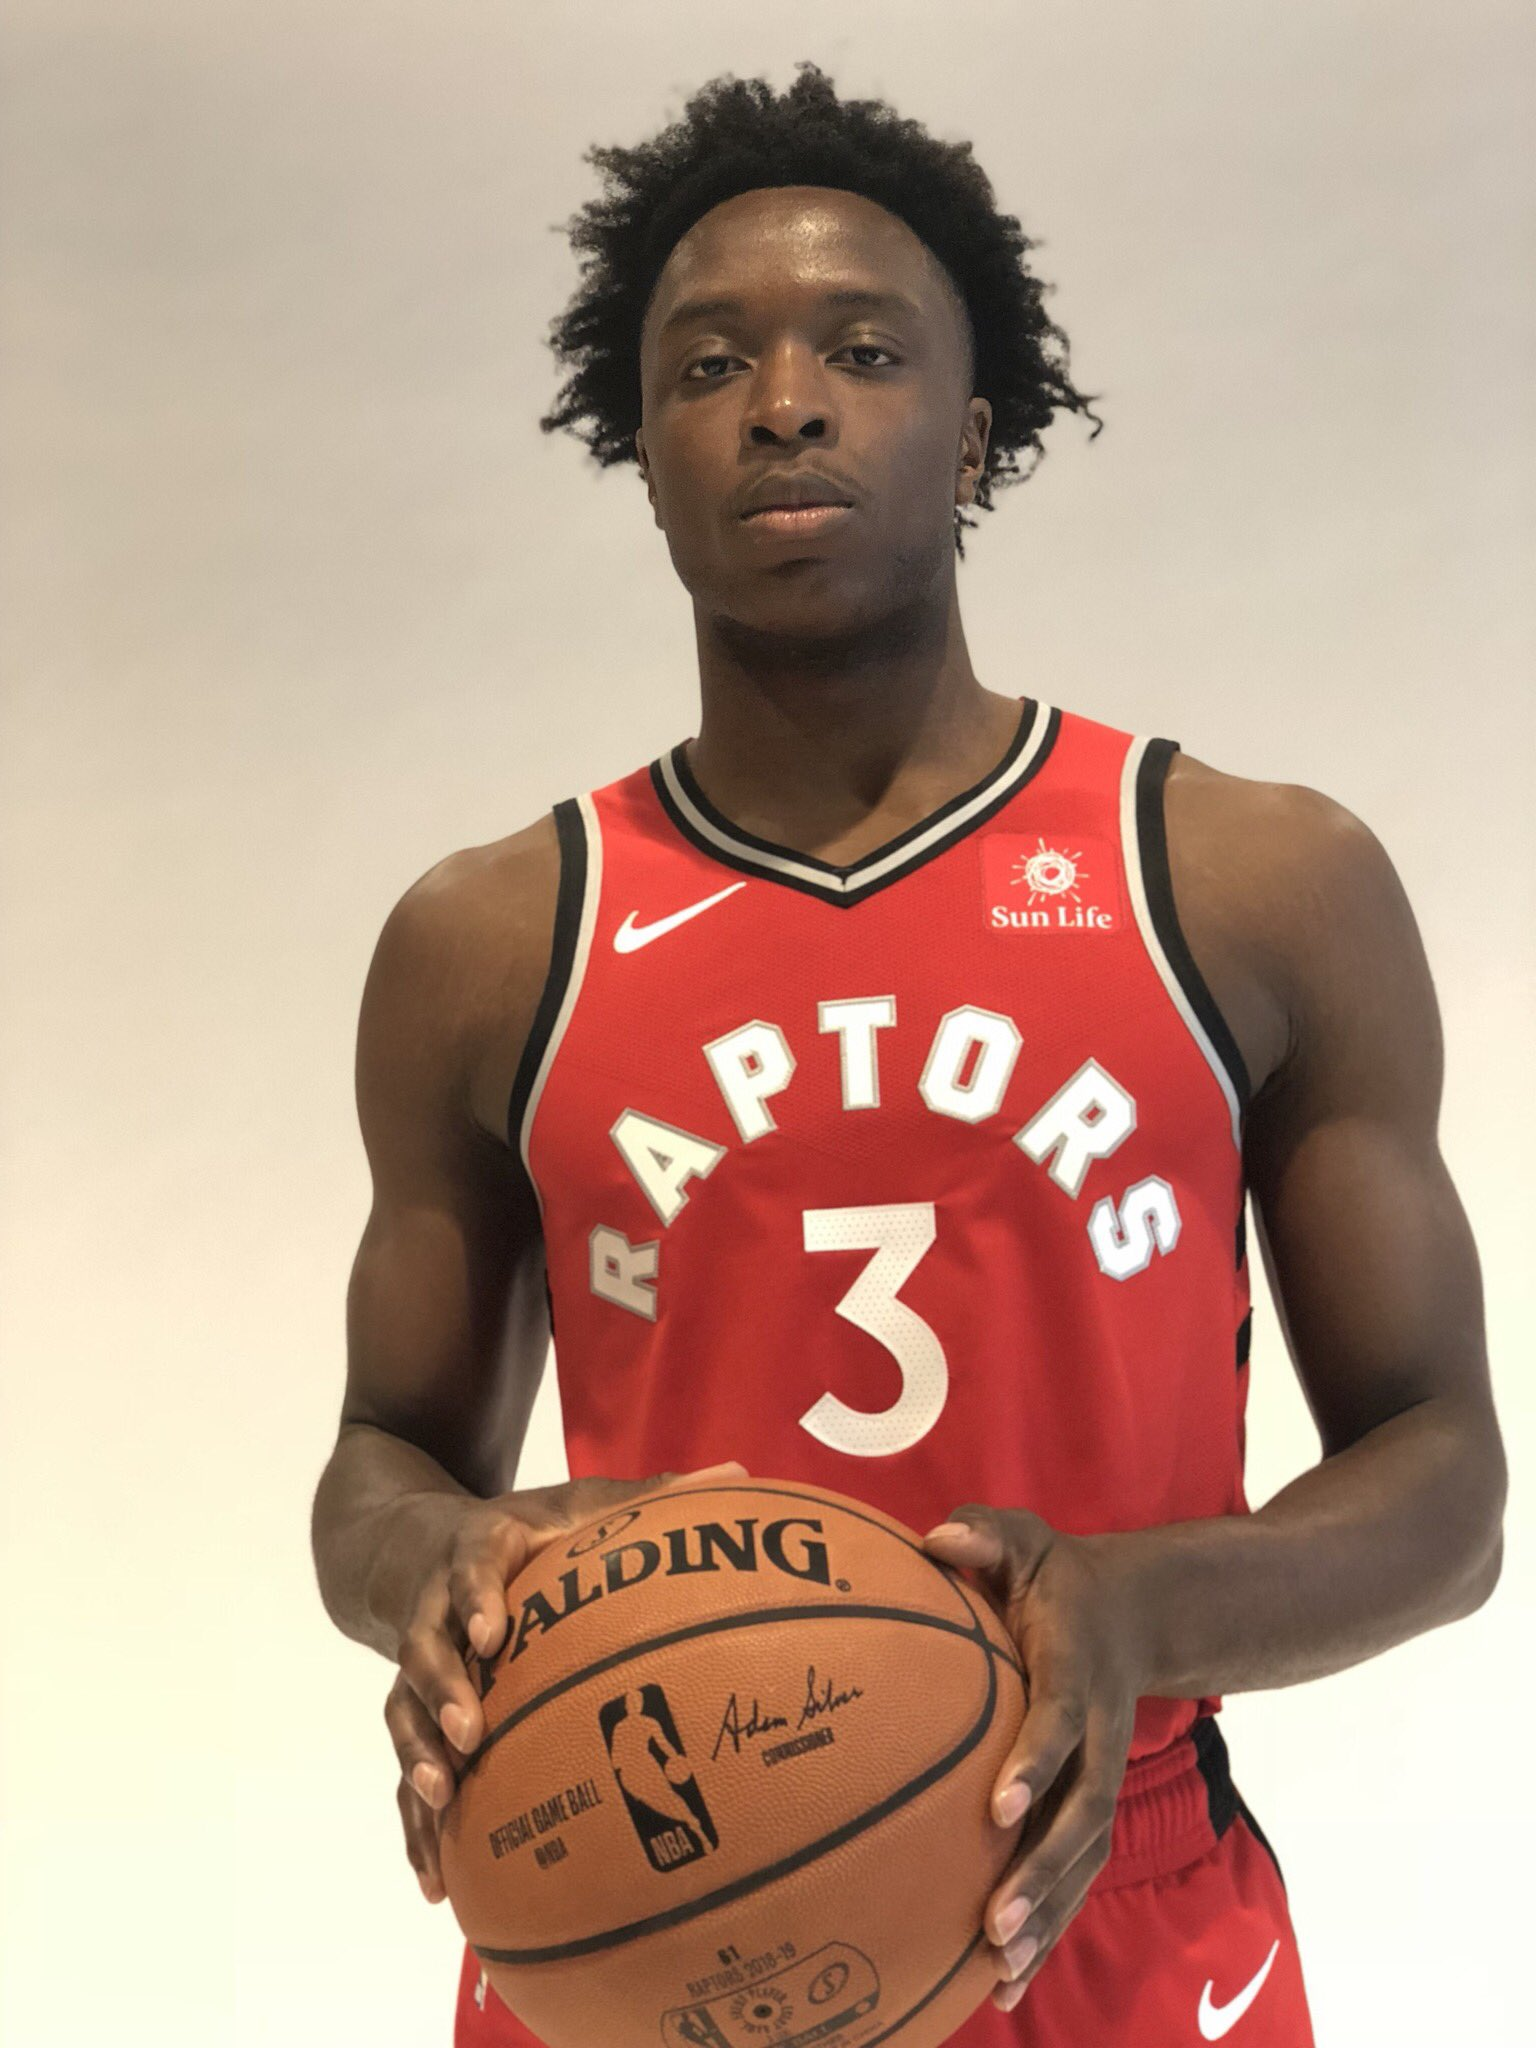 Year 2️⃣ ready. @OAnunoby.  #NBAMediaDay https://t.co/Uk8uEbMbJ0